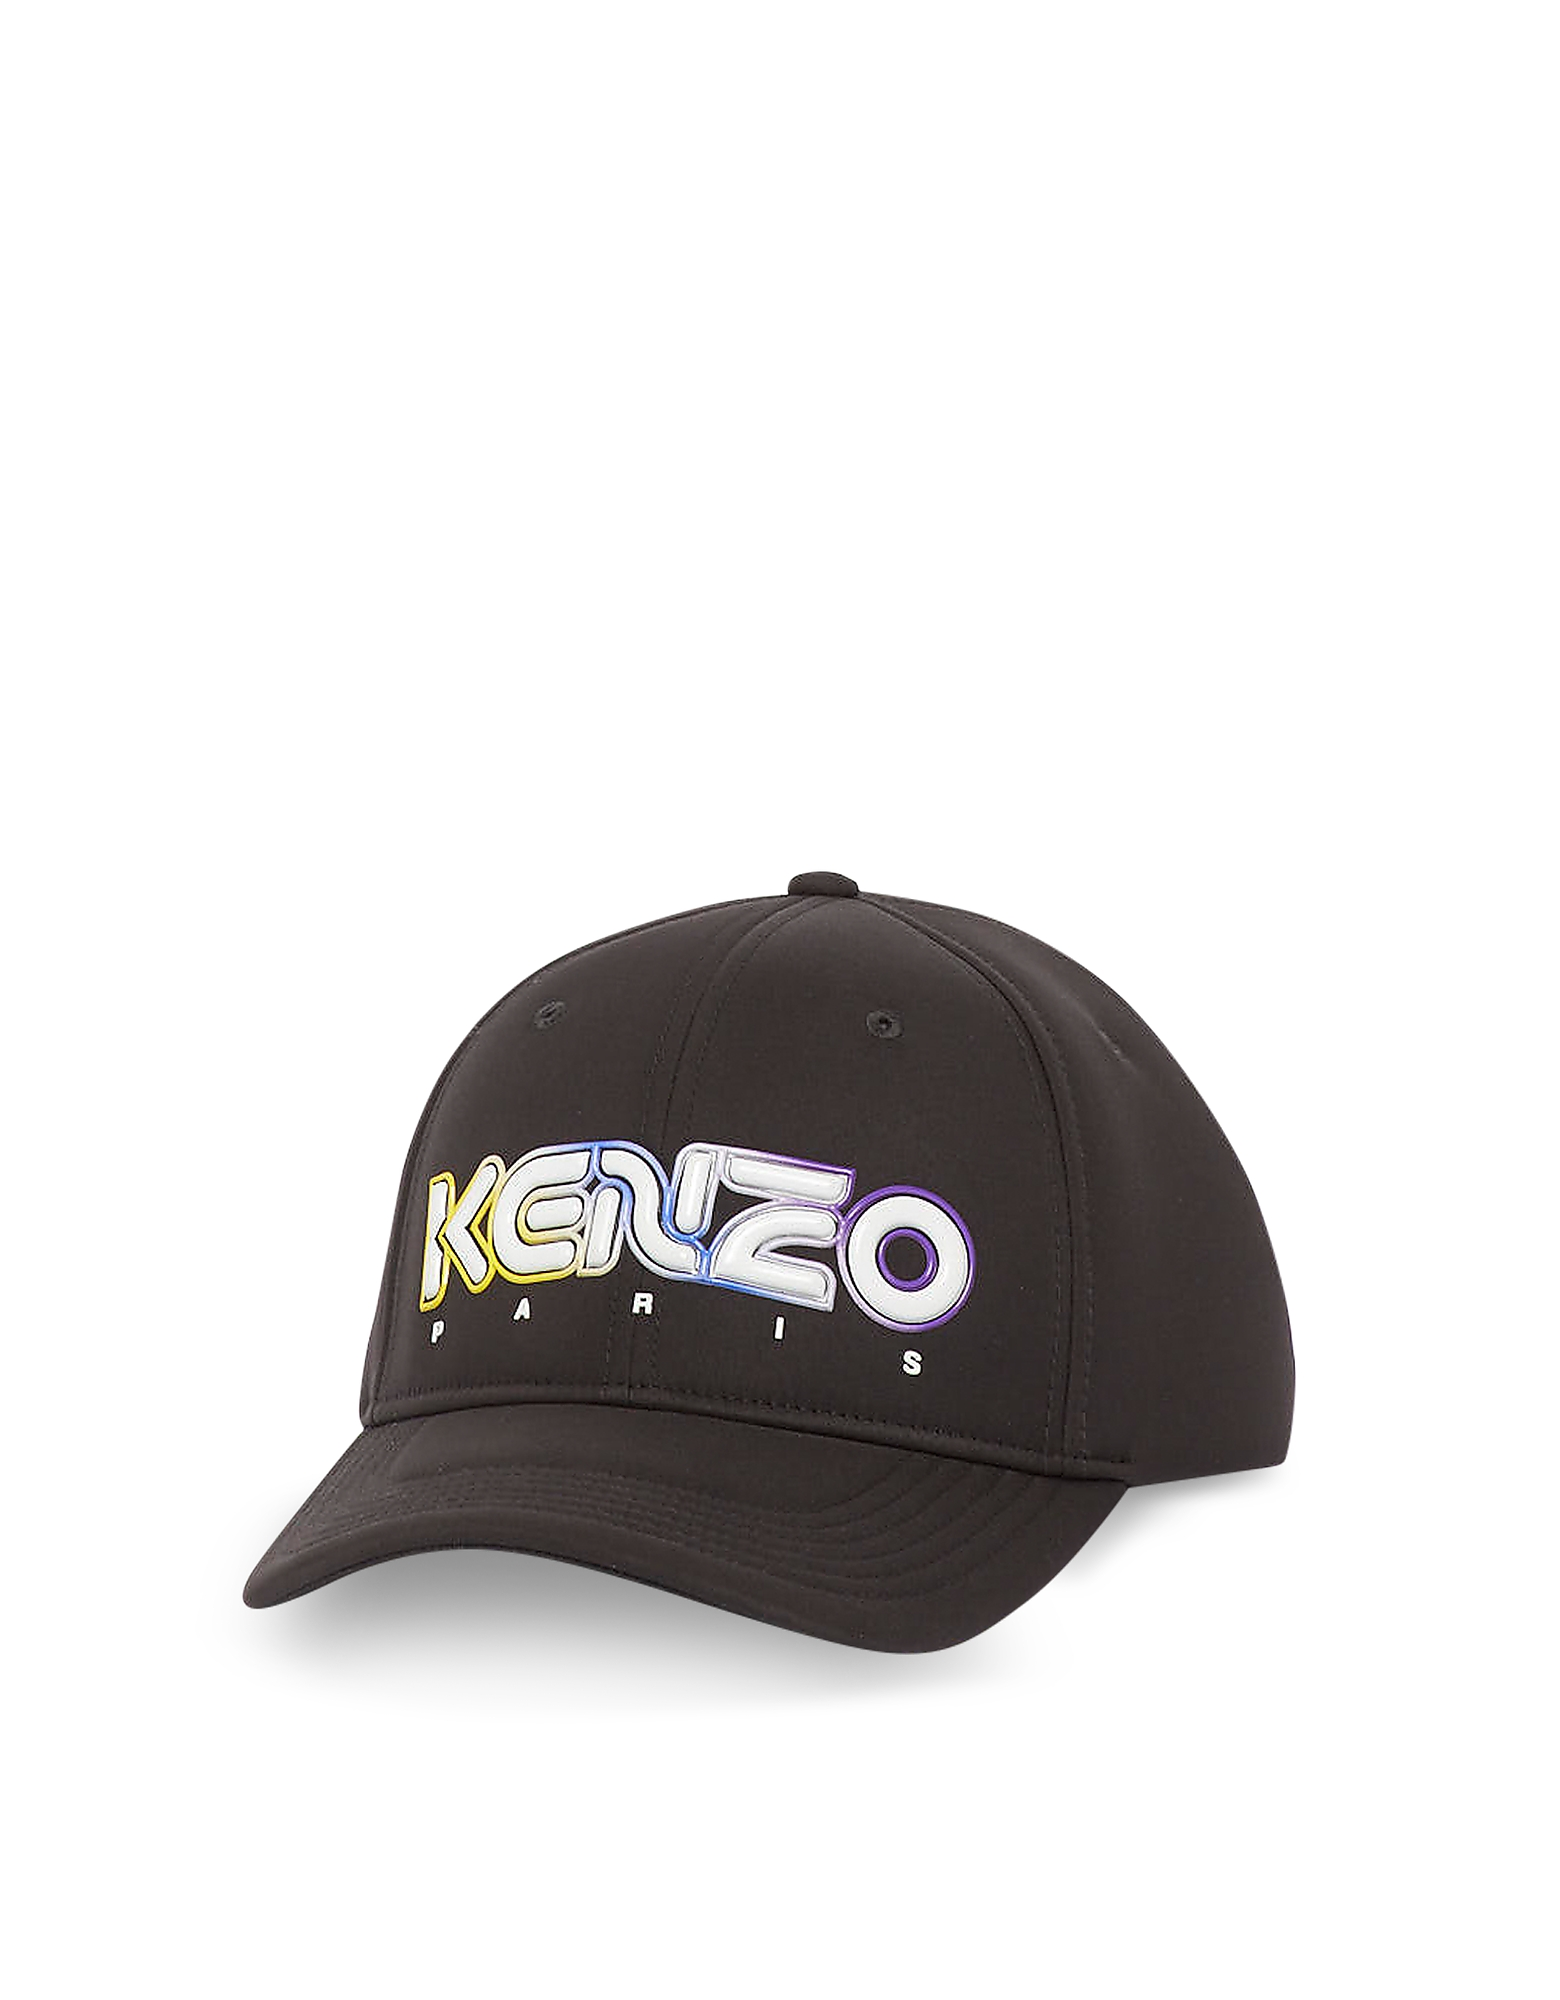 Kenzo Designer Women's Hats, Black Cotton Kombo Neoprene Baseball Cap